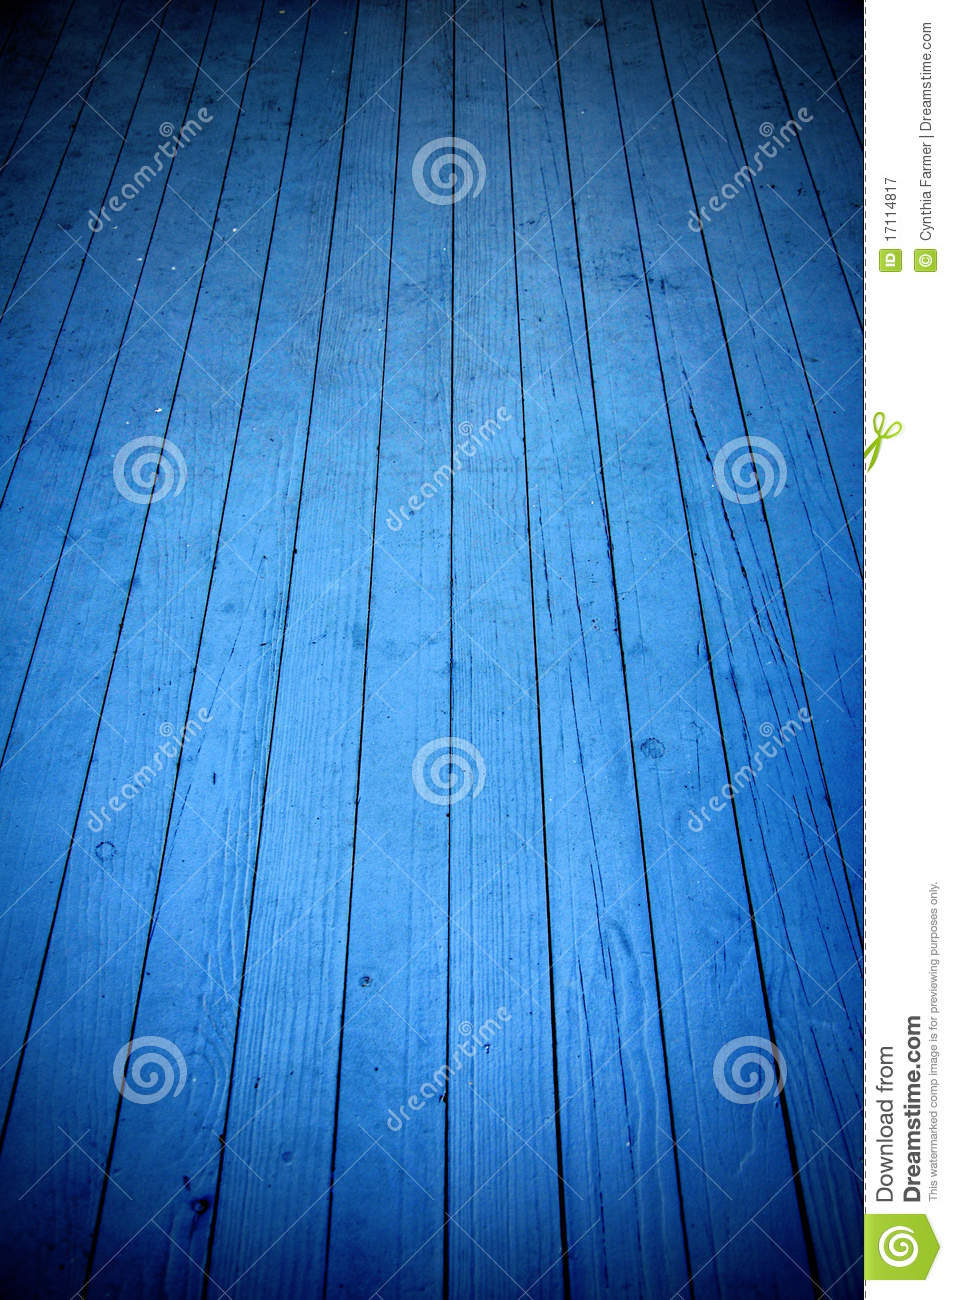 Blue Wood Floor Abstract Stock Image Image Of Rows